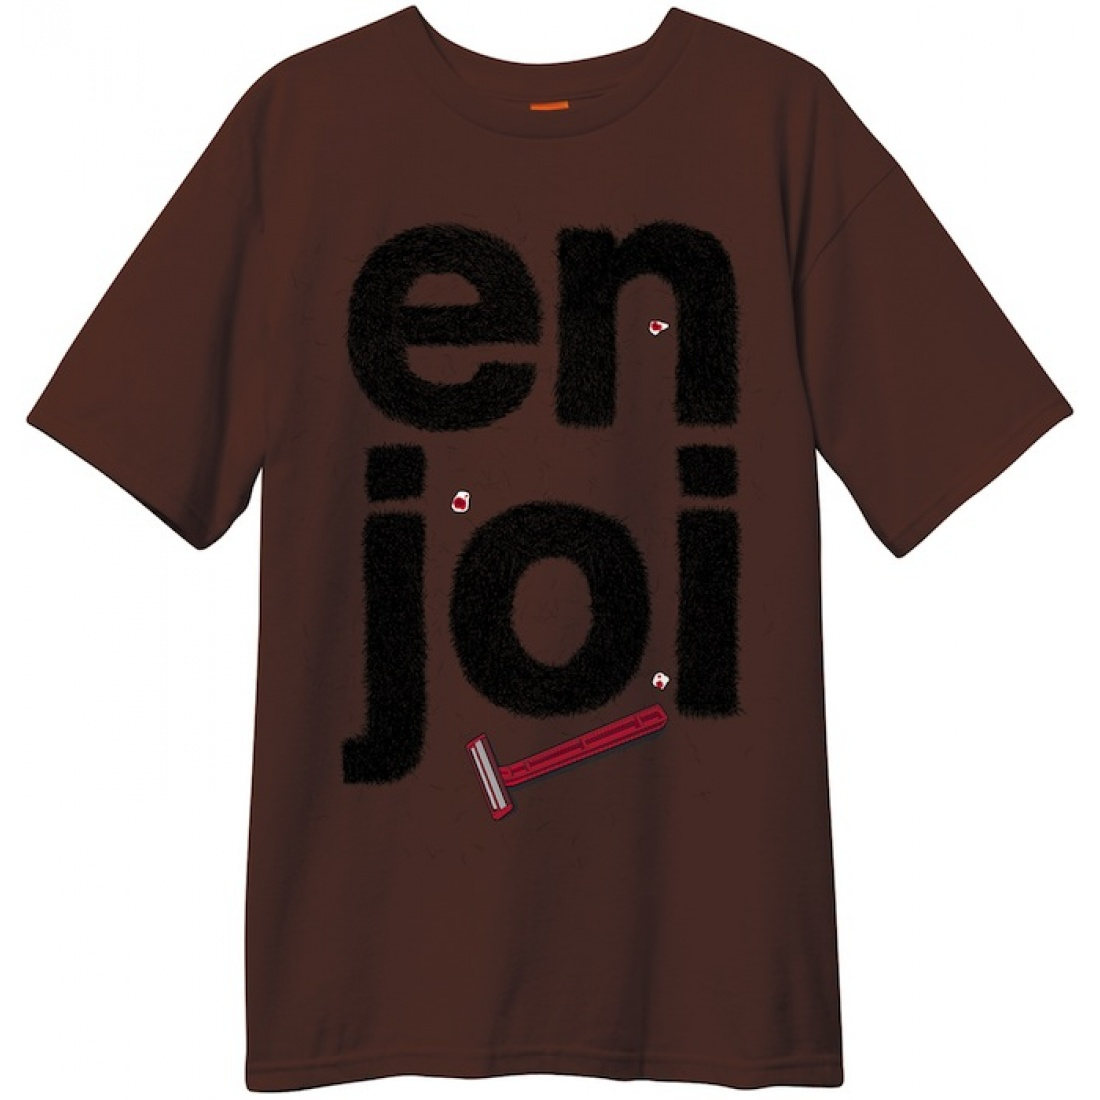 ENJ-Manscape Dark Chocolate Tee